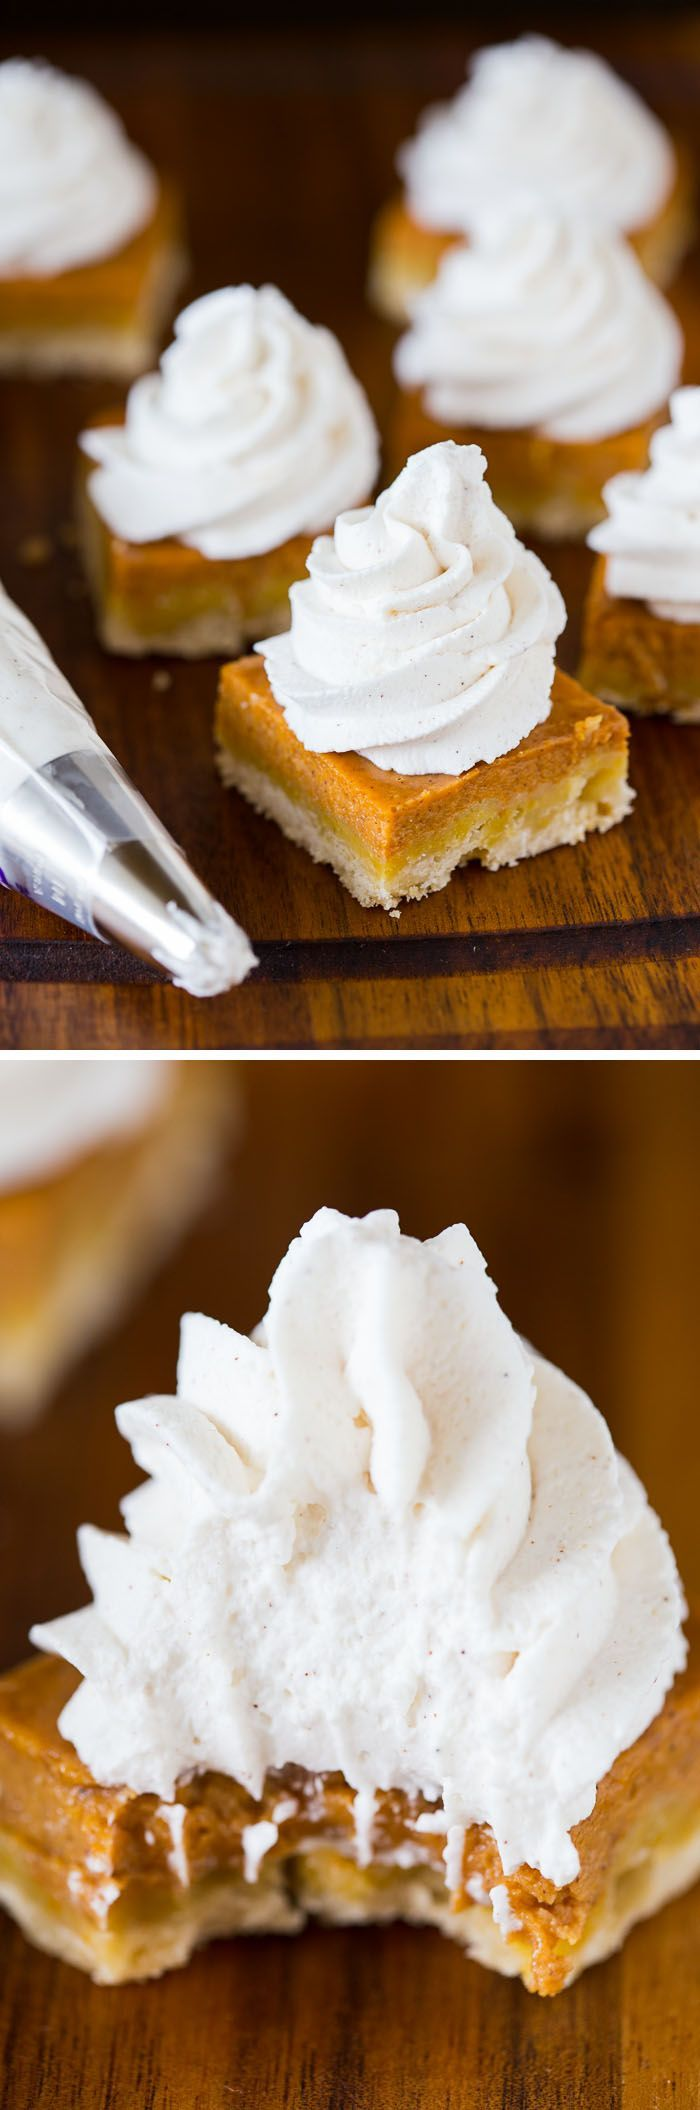 Pumpkin Pie Shortbread Bars with Maple Cinnamon Whipped Cream: a fall dessert recipe that gives pumpkin pie an amazing makeover! Perfect for Thanksgiving!